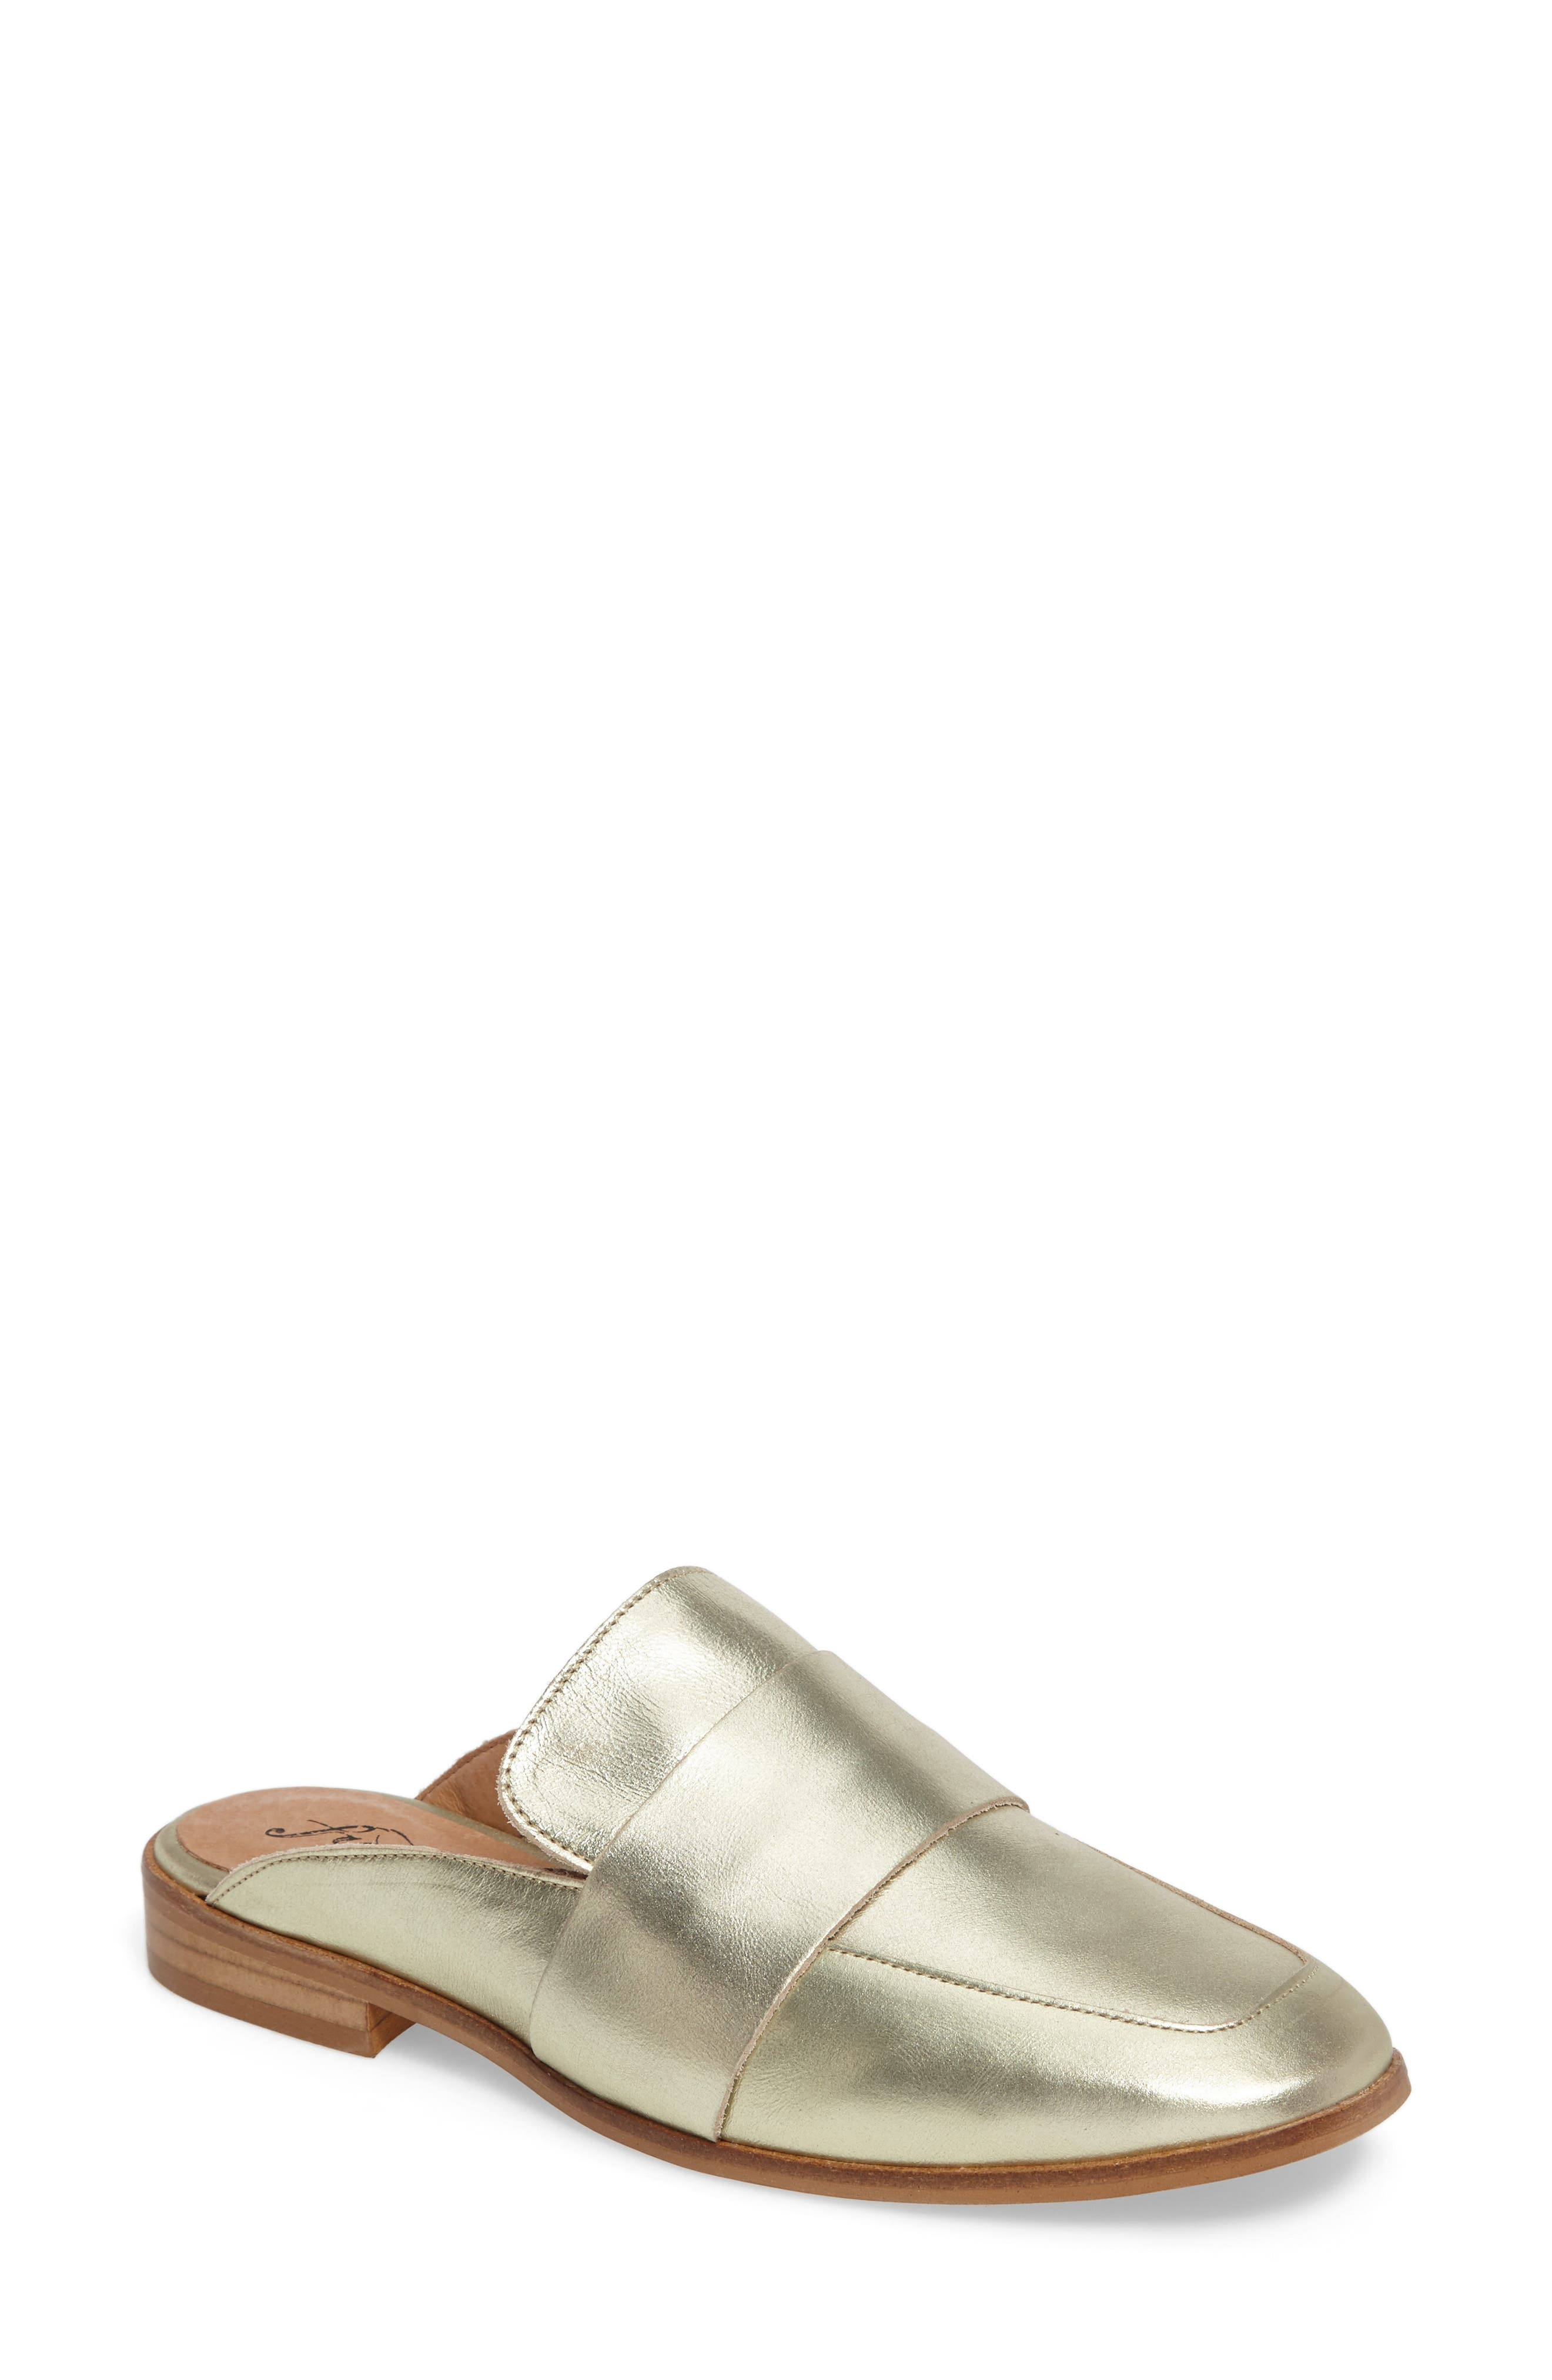 At Ease Loafer Mule,                         Main,                         color, GOLD LEATHER